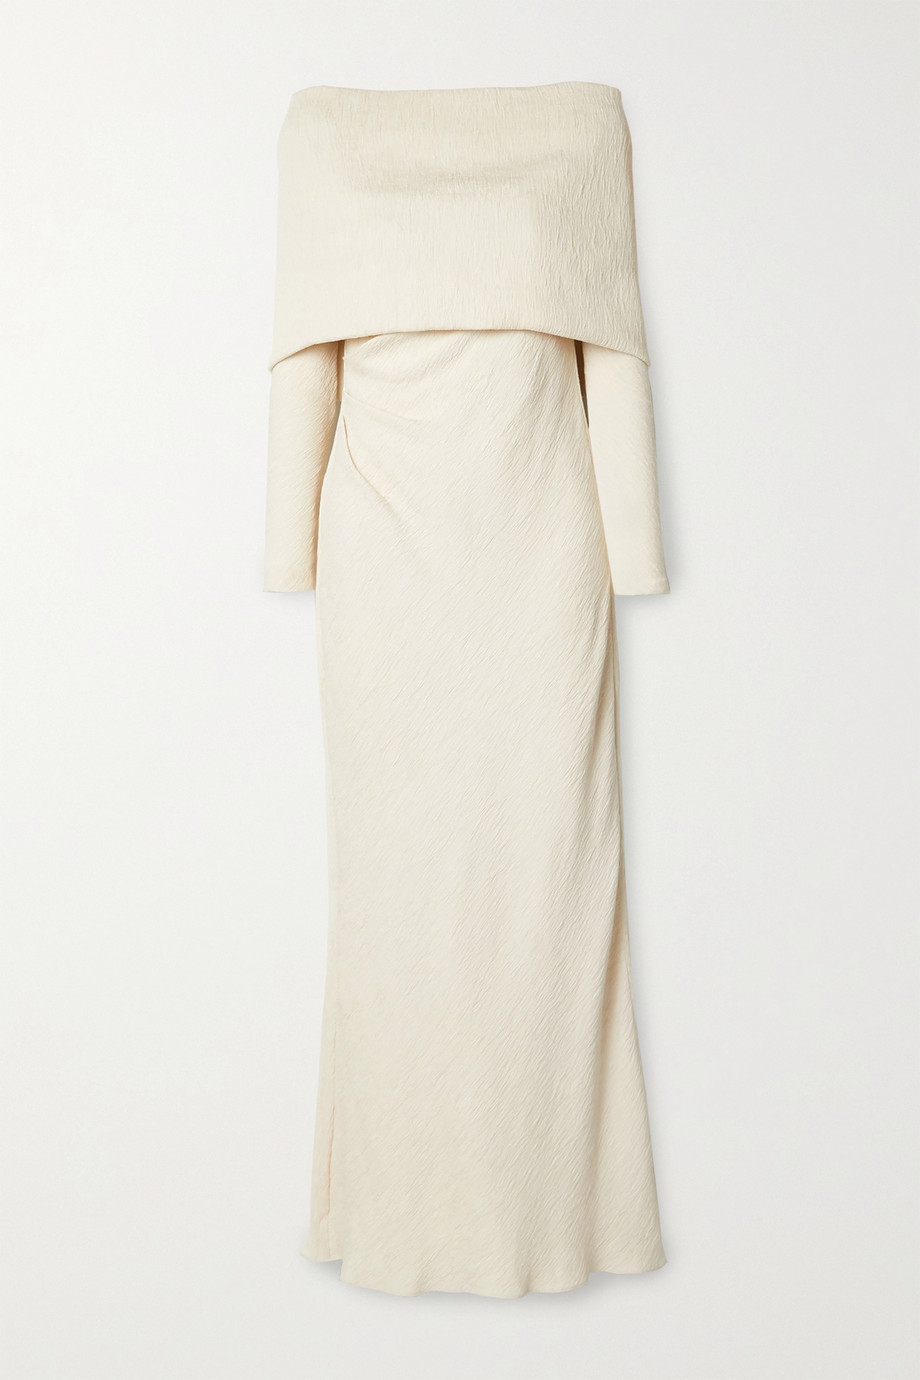 JOHANNA ORTIZ The Real Truth draped crinkled-crepe maxi dress